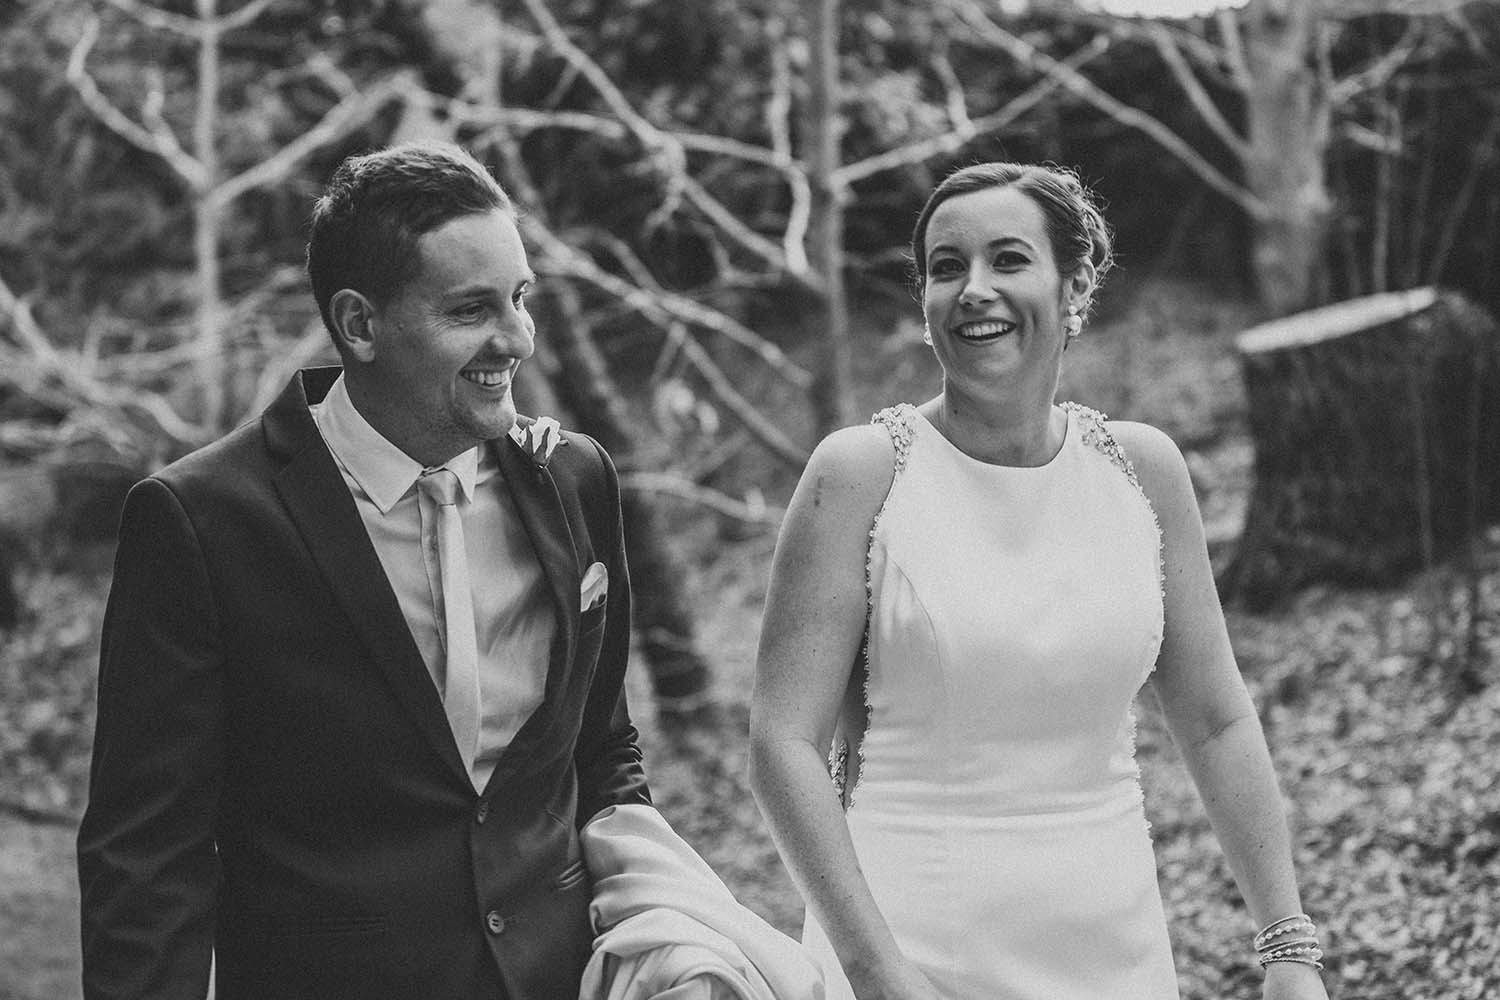 Wedding Photography - bride and groom black and white